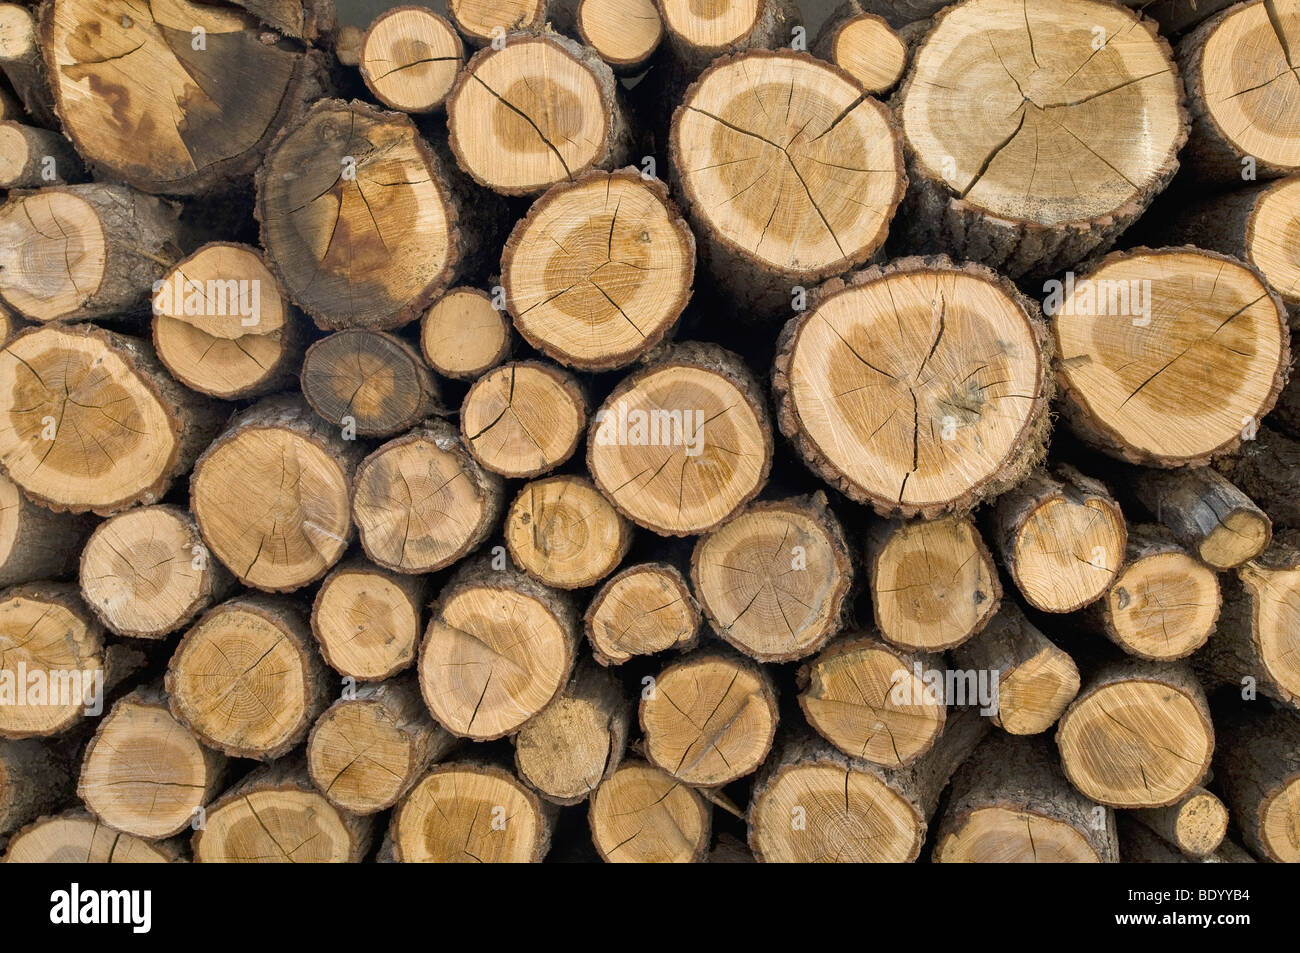 Stacked firewood, view from the front, cut sections - Stock Image